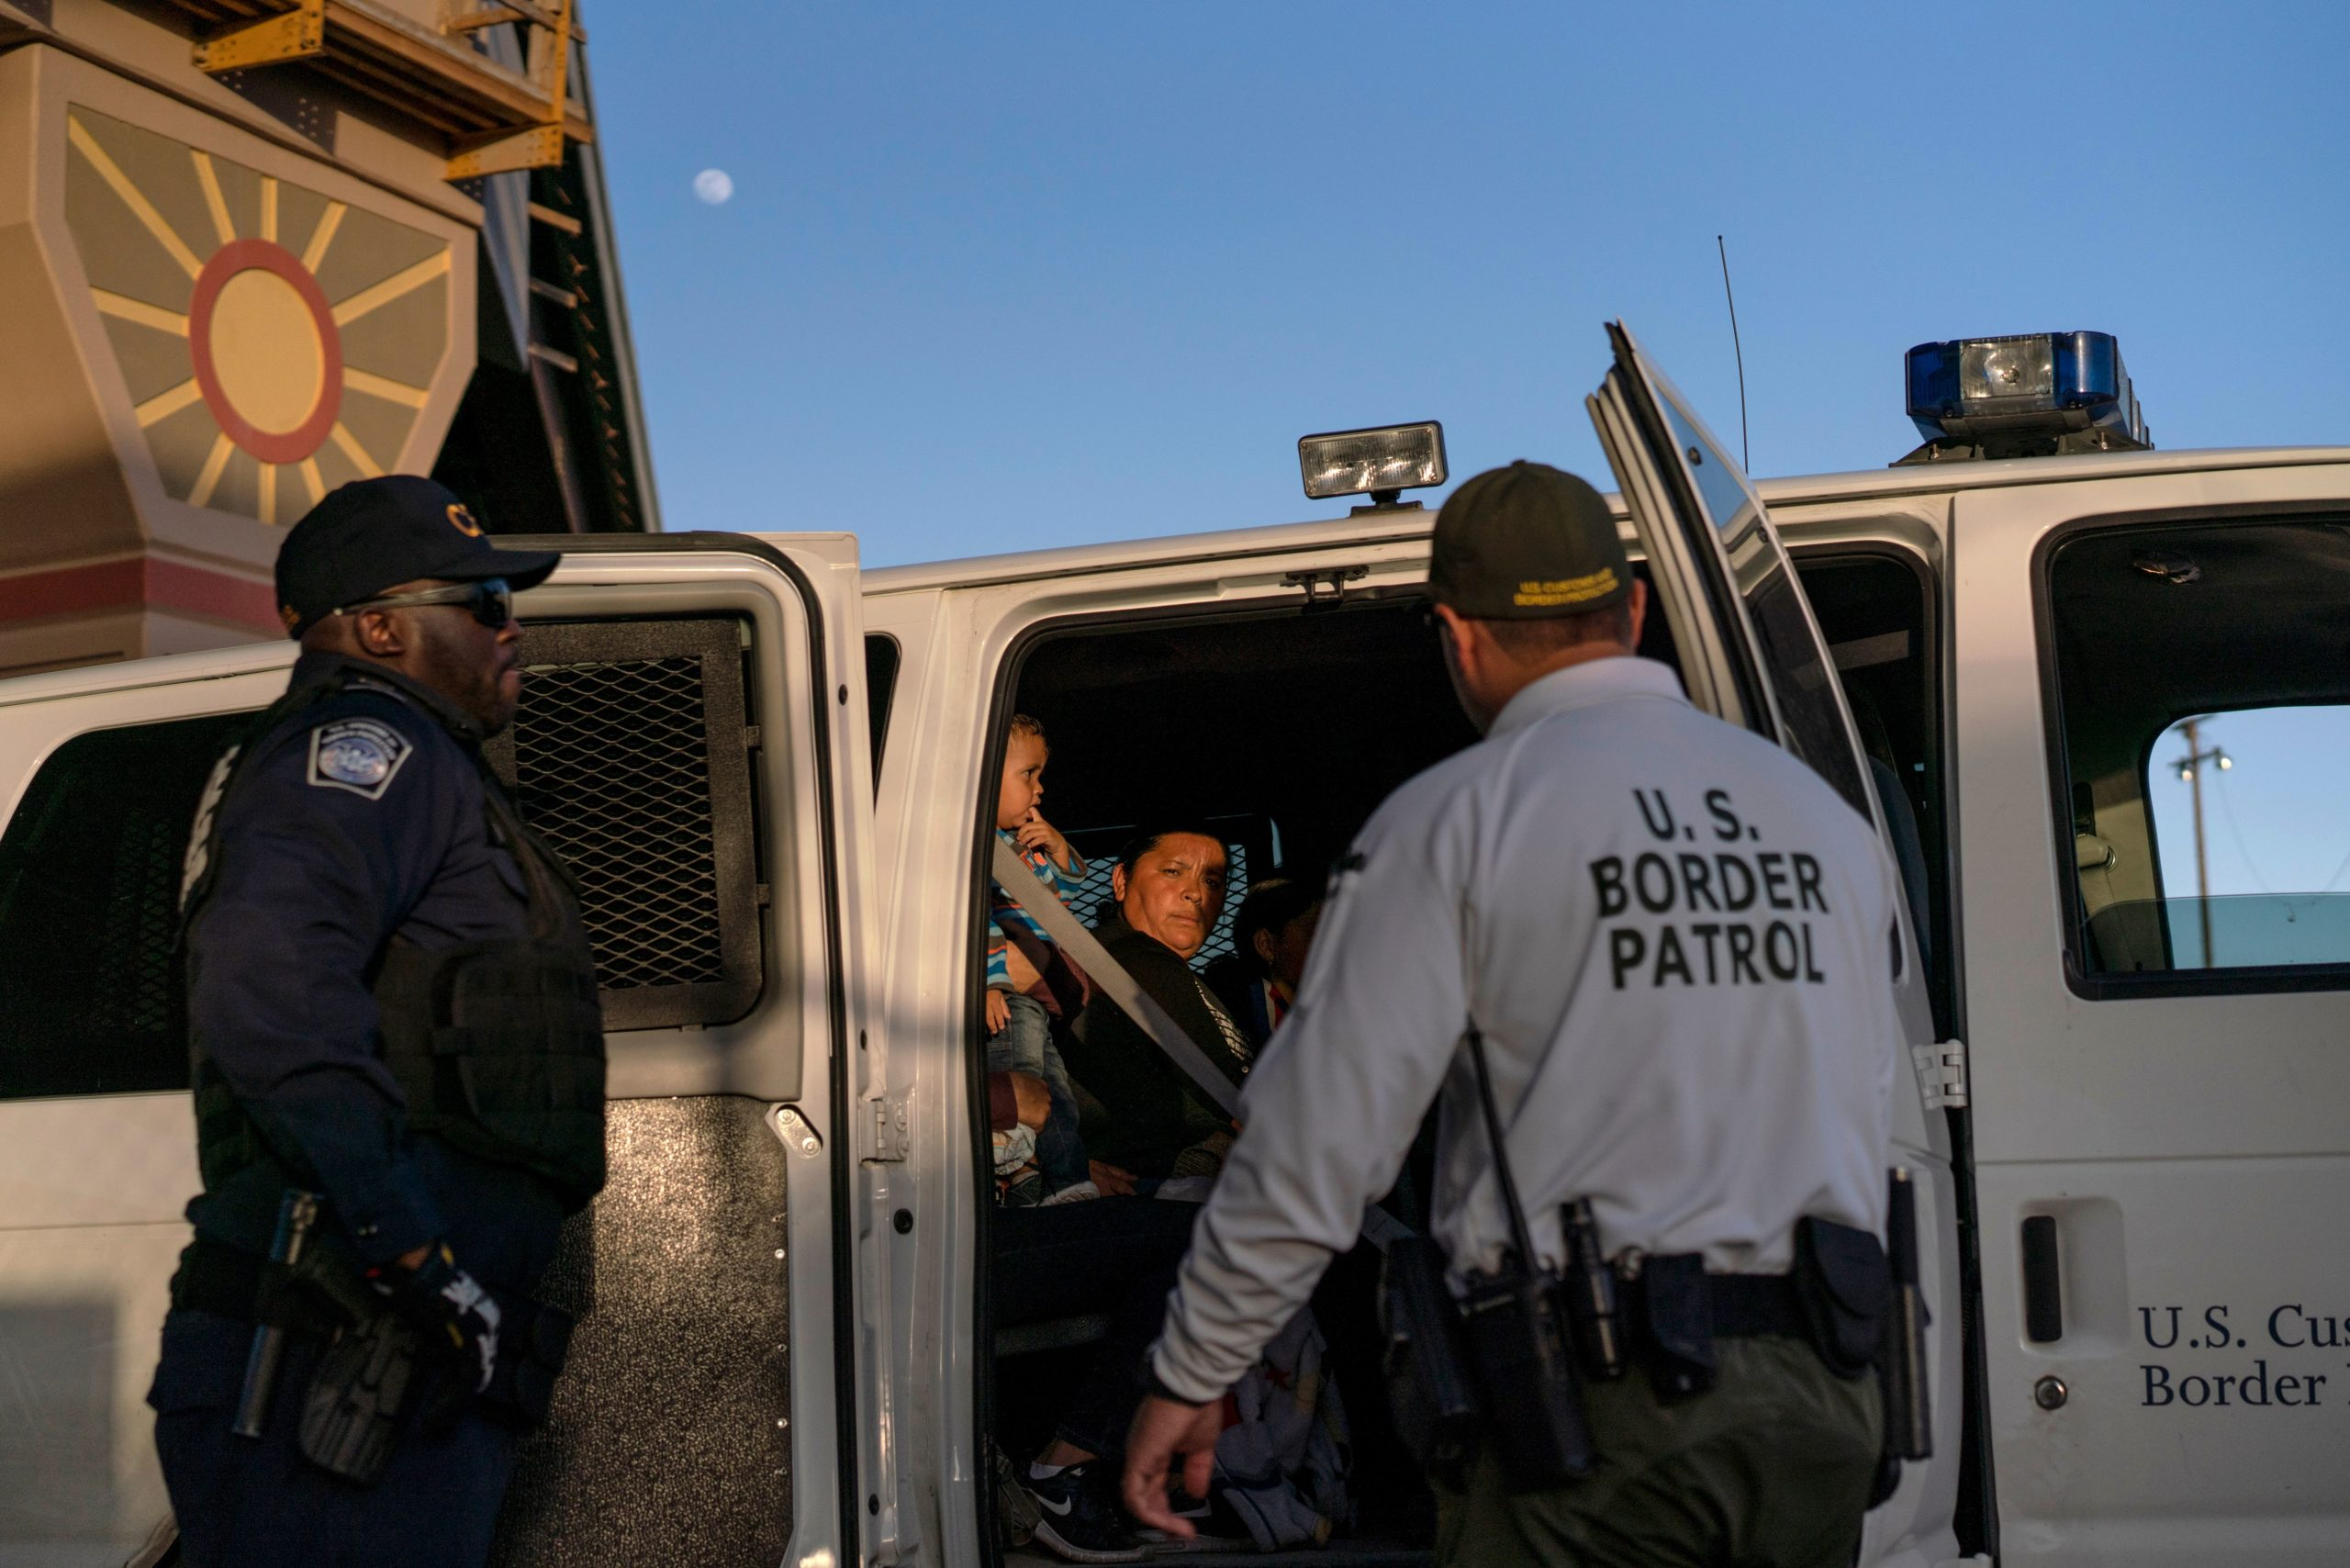 Migrants, mostly from Central America, board a van which will take them to a processing center, on May 16, 2019, in El Paso, Texas. - About 1,100 migrants from Central America and other countries are crossing into the El Paso border sector each day. US Customs and Border Protection Public Information Officer Frank Pino, says that Border Patrol resources and personnel are being stretched by the ongoing migrant crisis, and that the real targets of the Border Patrol are slipping through the cracks. (Photo by Paul Ratje / AFP) (Photo credit should read PAUL RATJE/AFP via Getty Images)